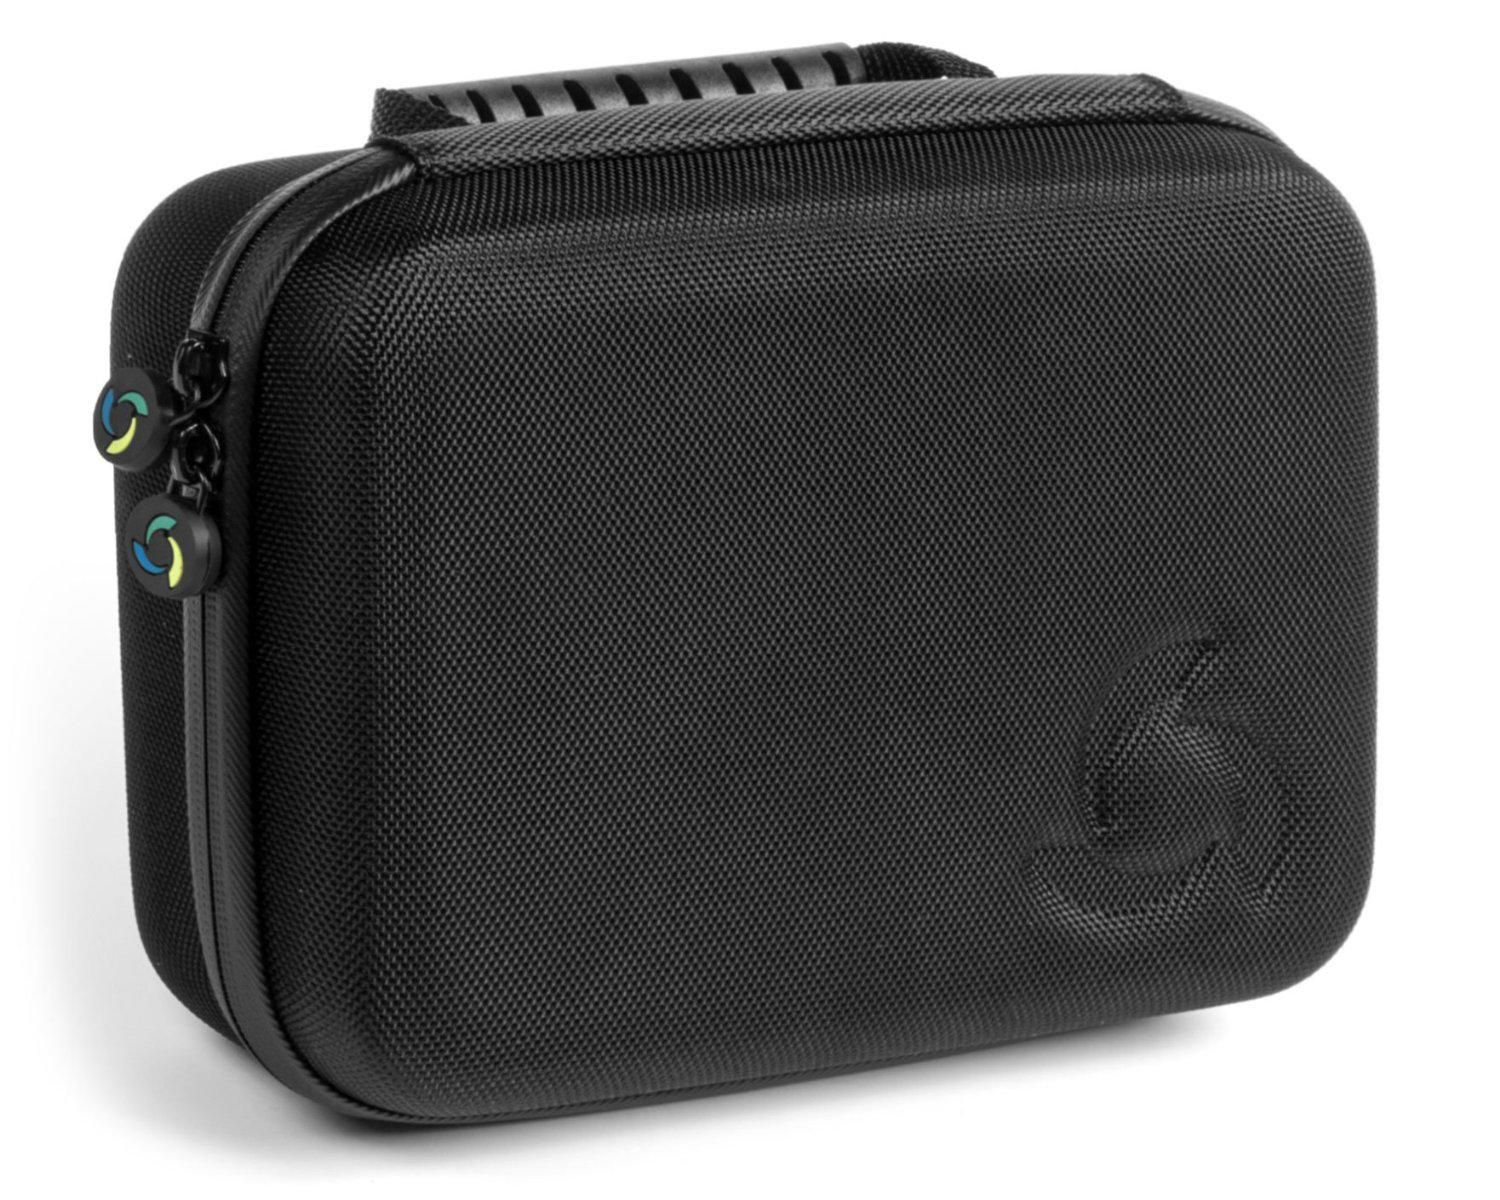 Trio Sports Go Pro Case Gopro Carrying Case Gopro Camera Cases Gopro Cases